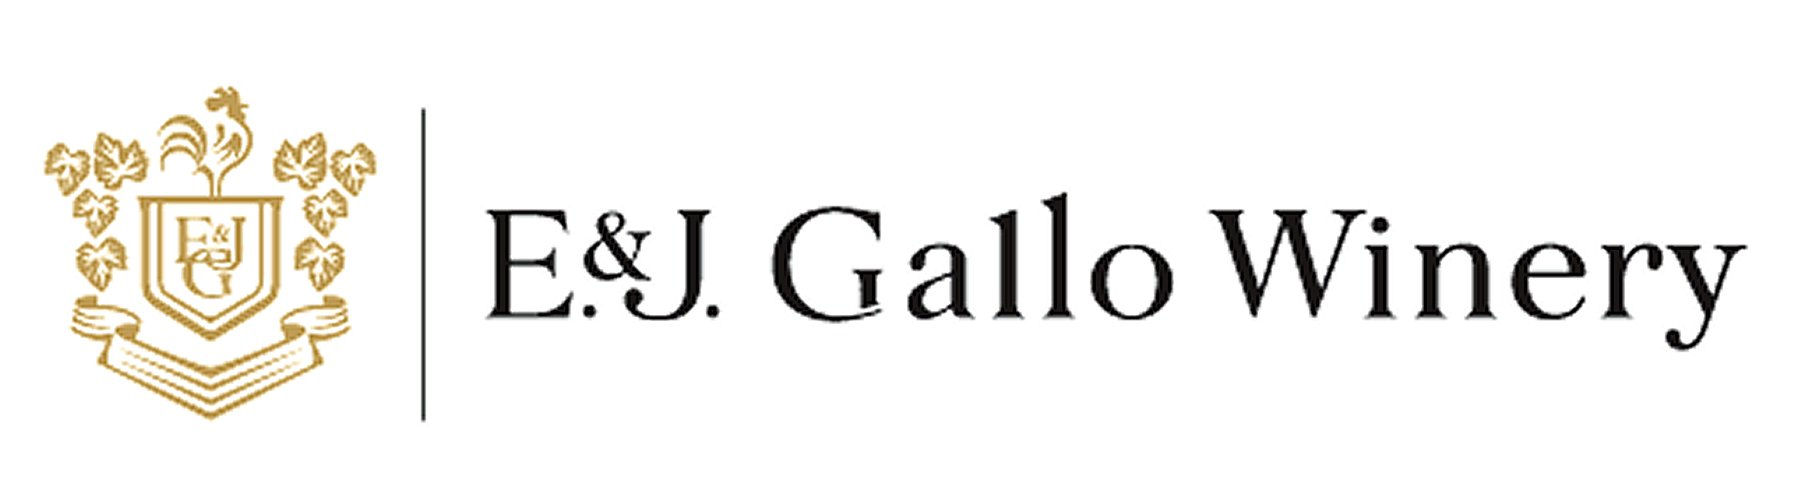 Image result for Gallo Wine logo vector